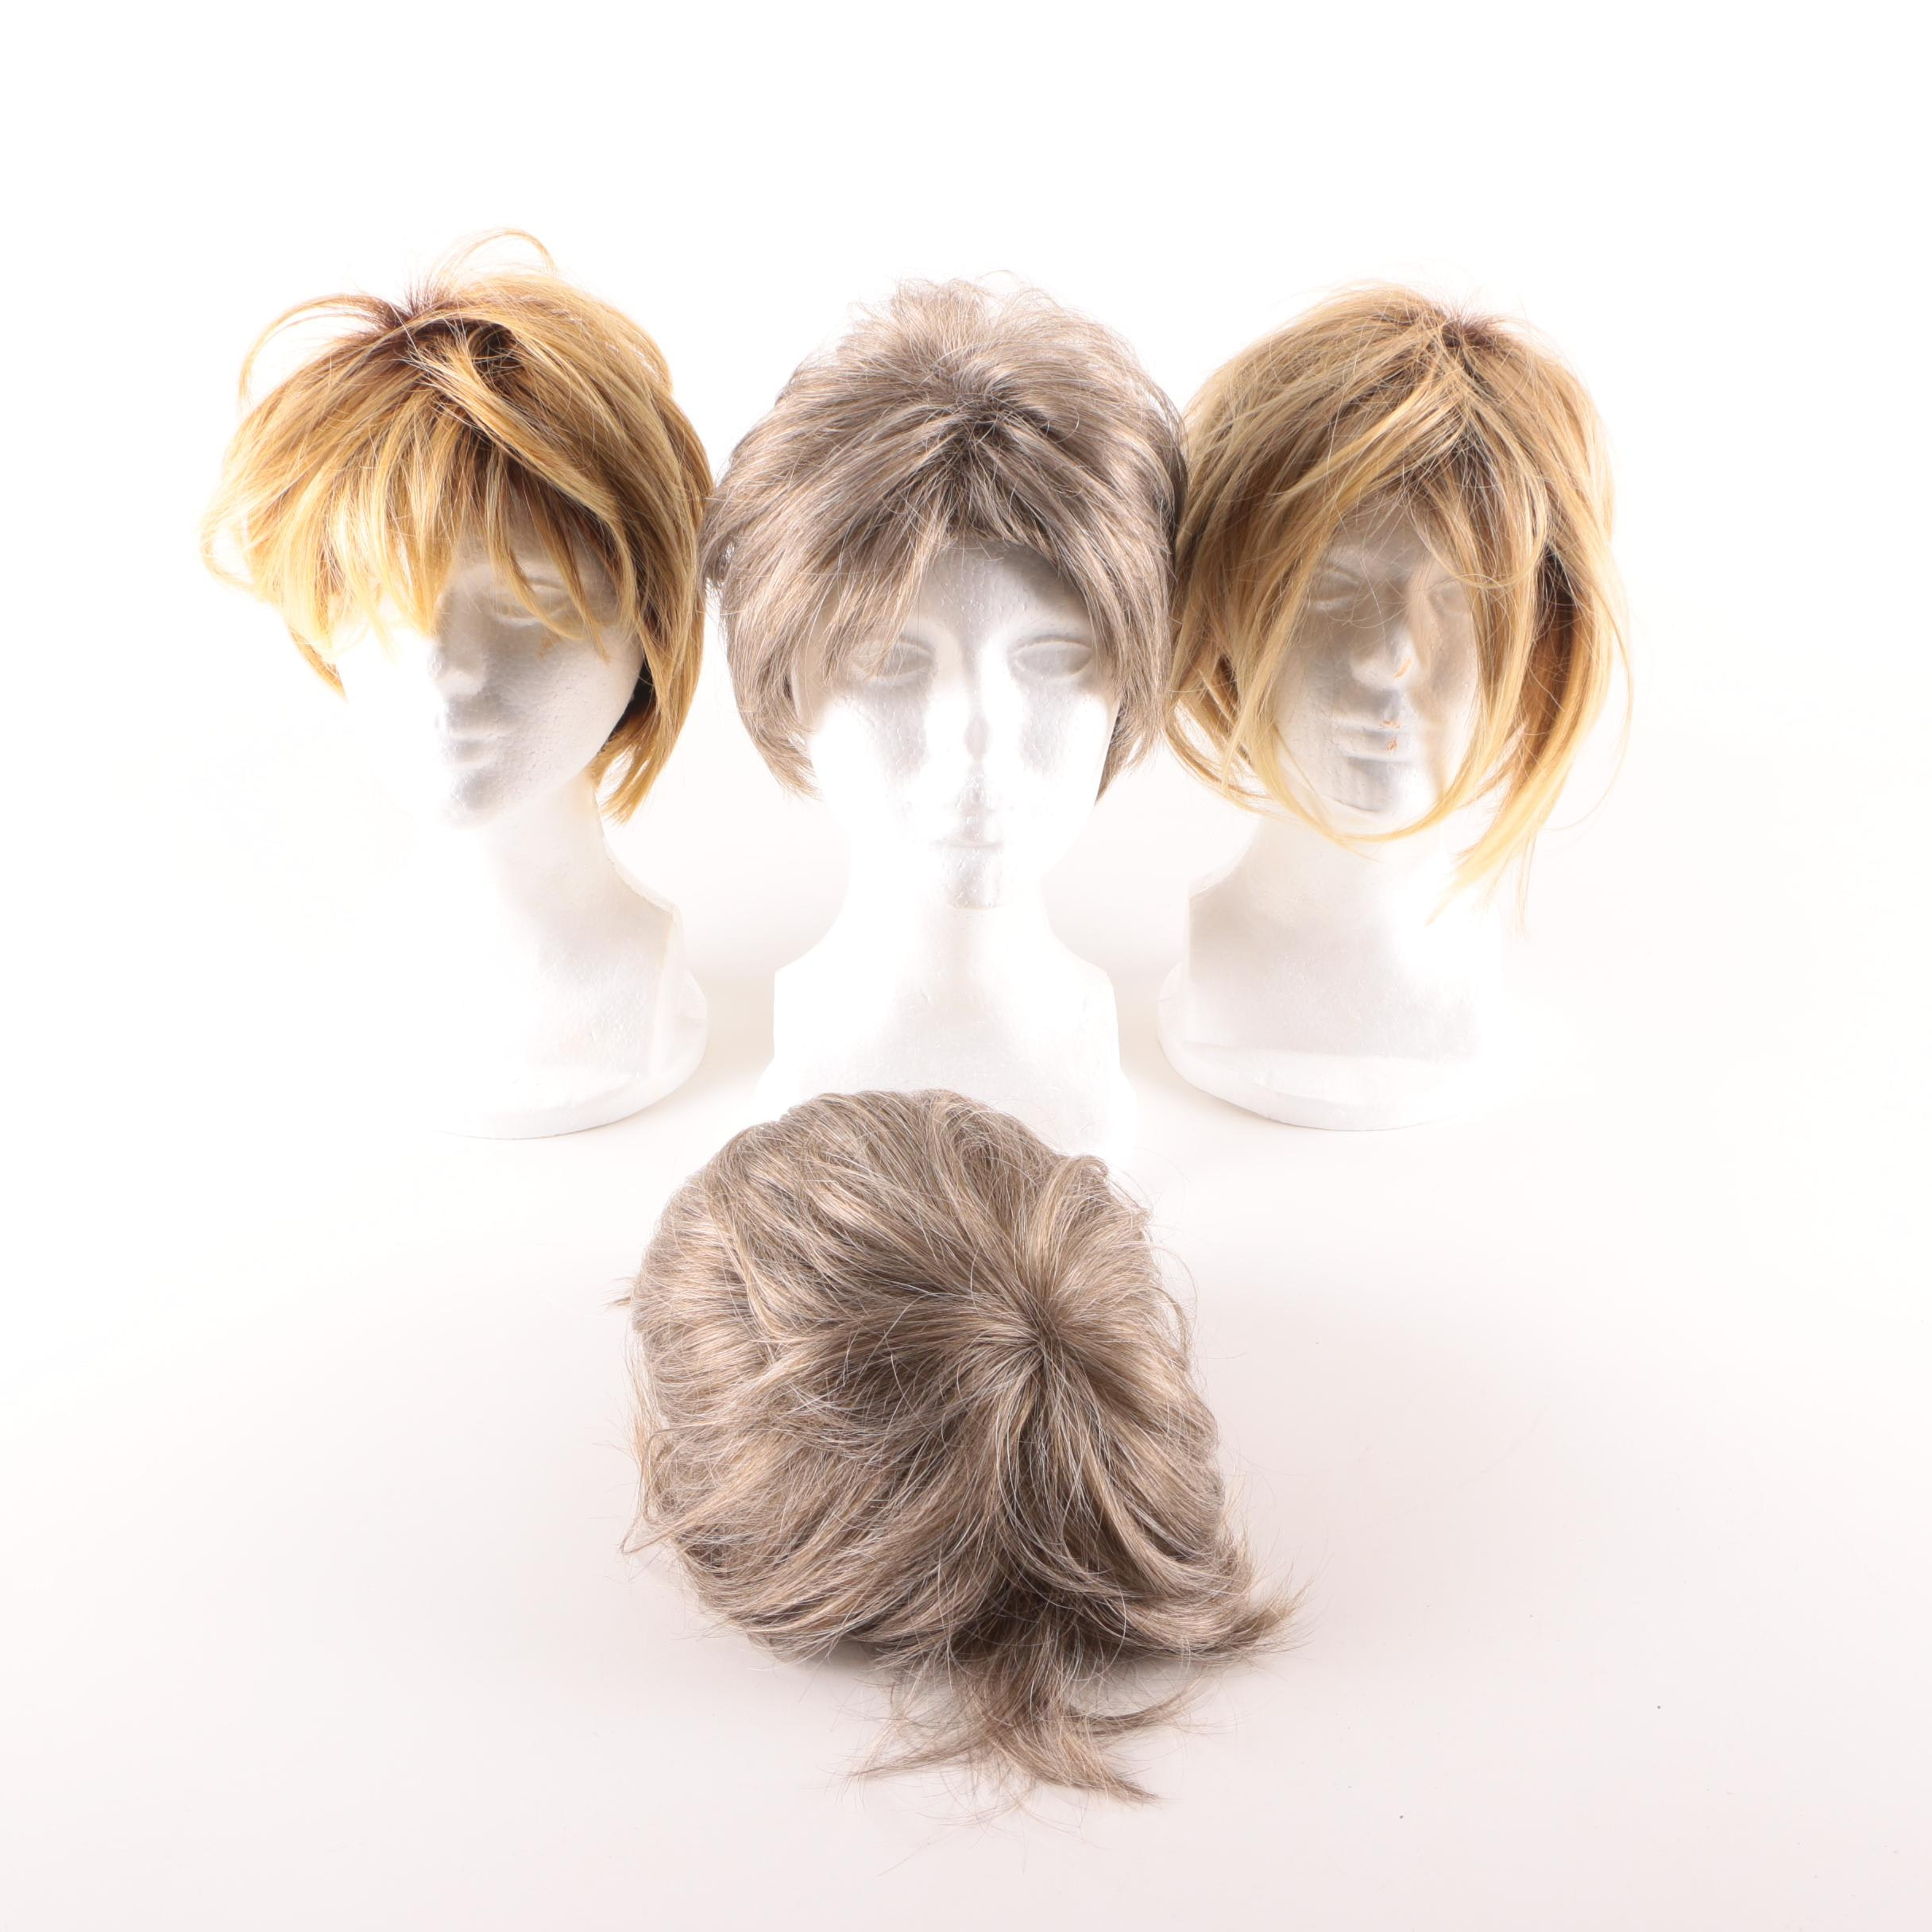 Synthetic Wigs and Styrofoam Head Mannequins